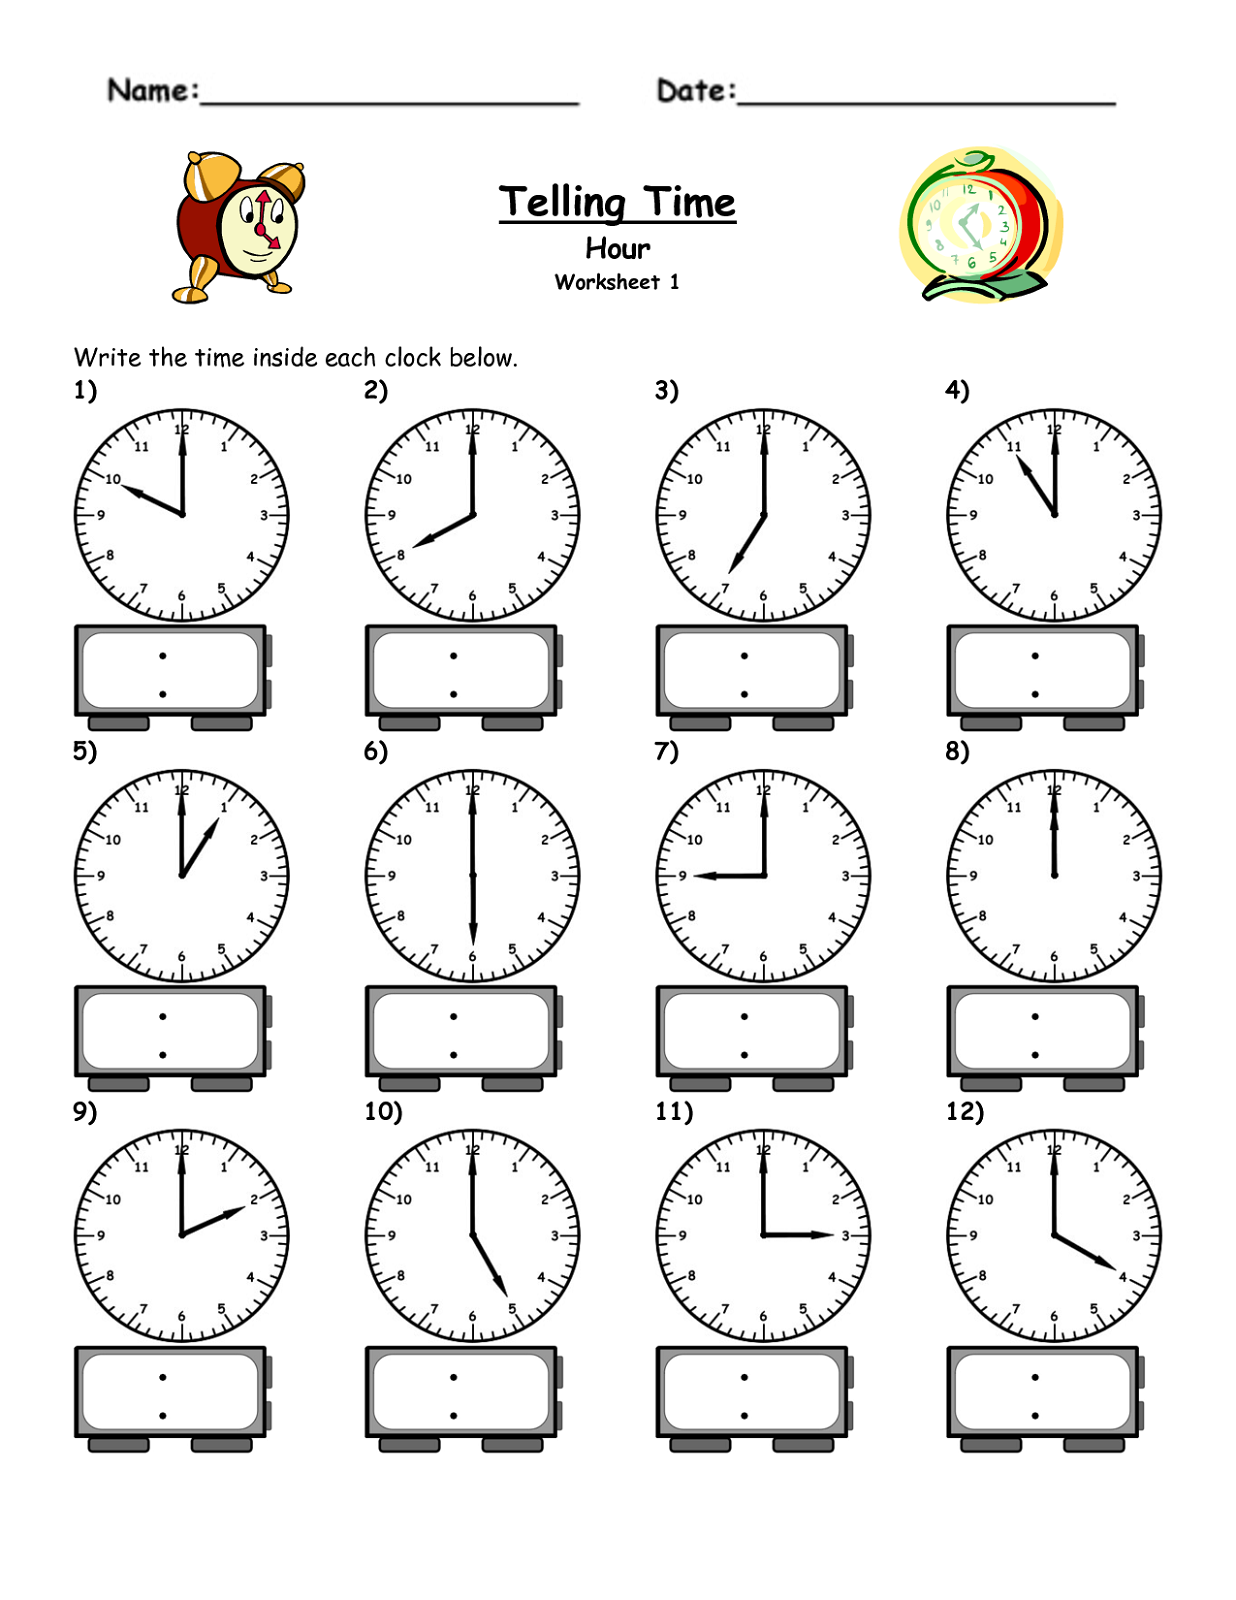 Worksheet 33002546 Telling Time Worksheets Kindergarten – Time to the Hour Worksheets